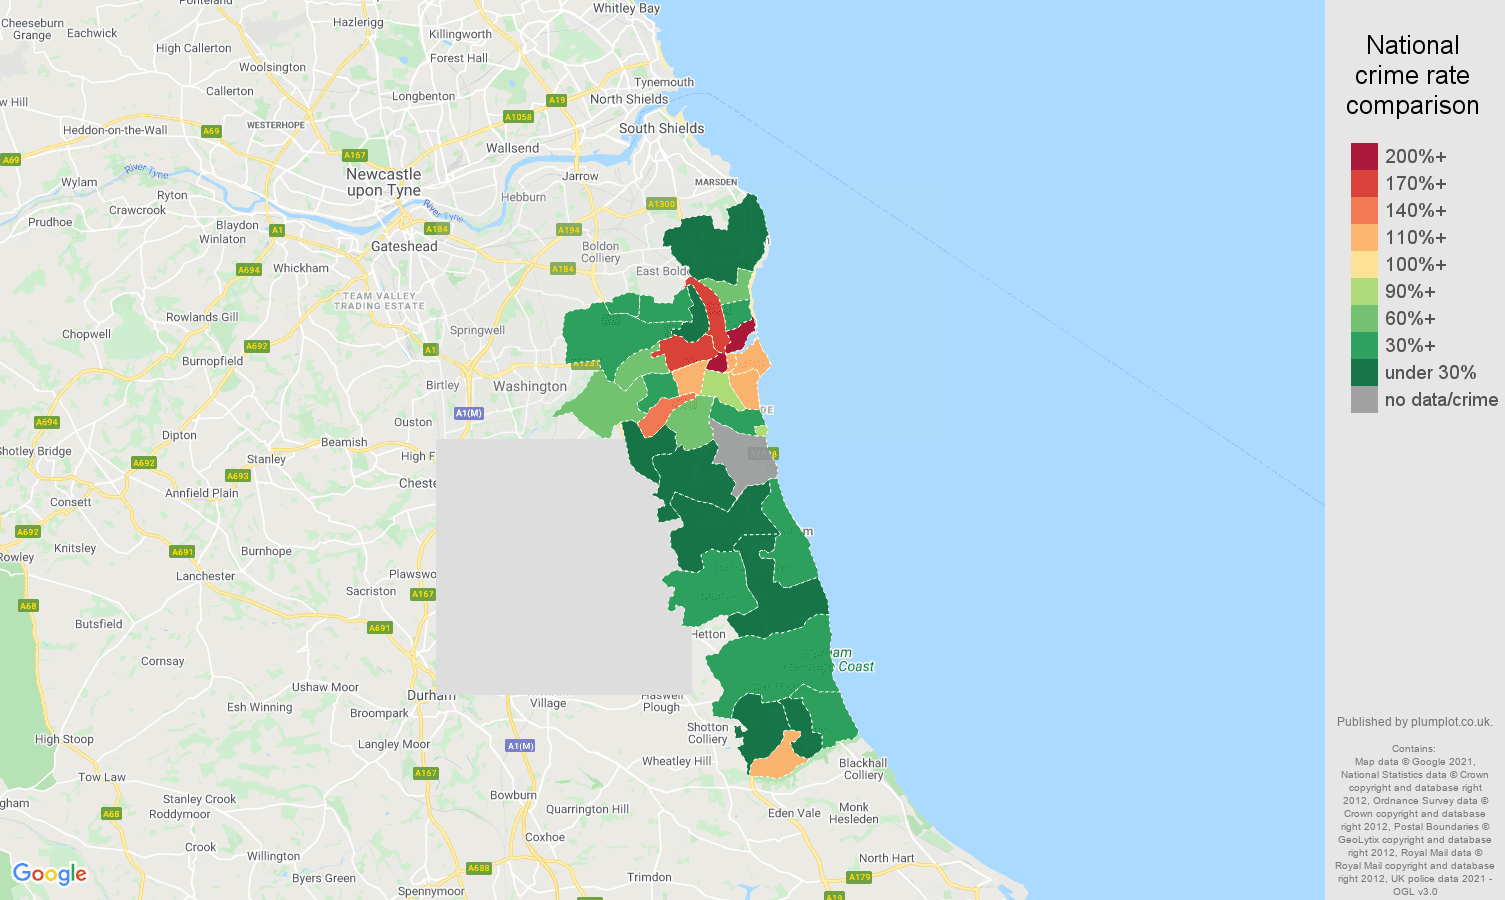 Sunderland bicycle theft crime rate comparison map